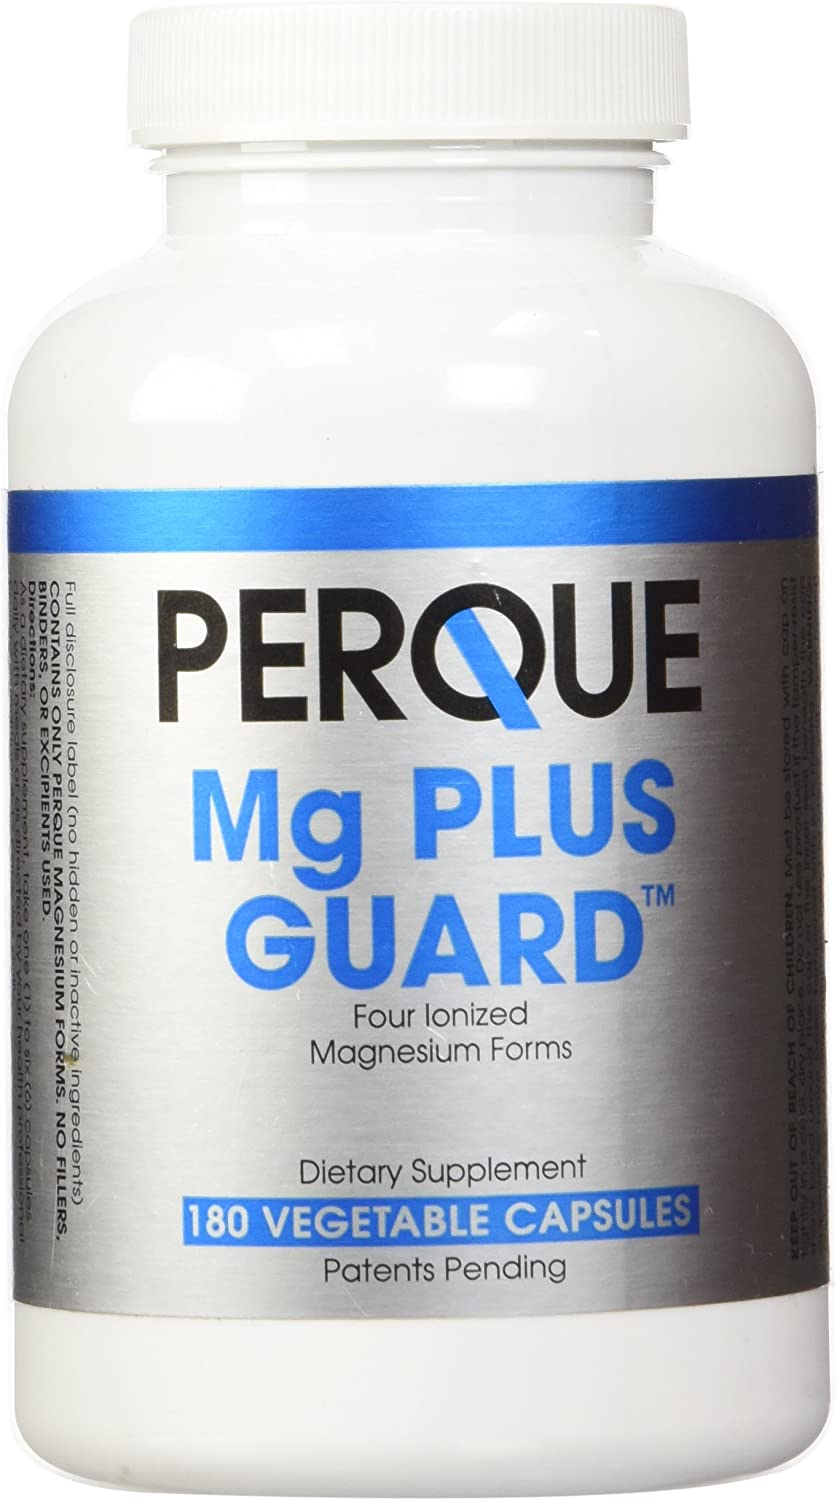 PERQUE Mg Plus Guard 180 Vegetable Capsules